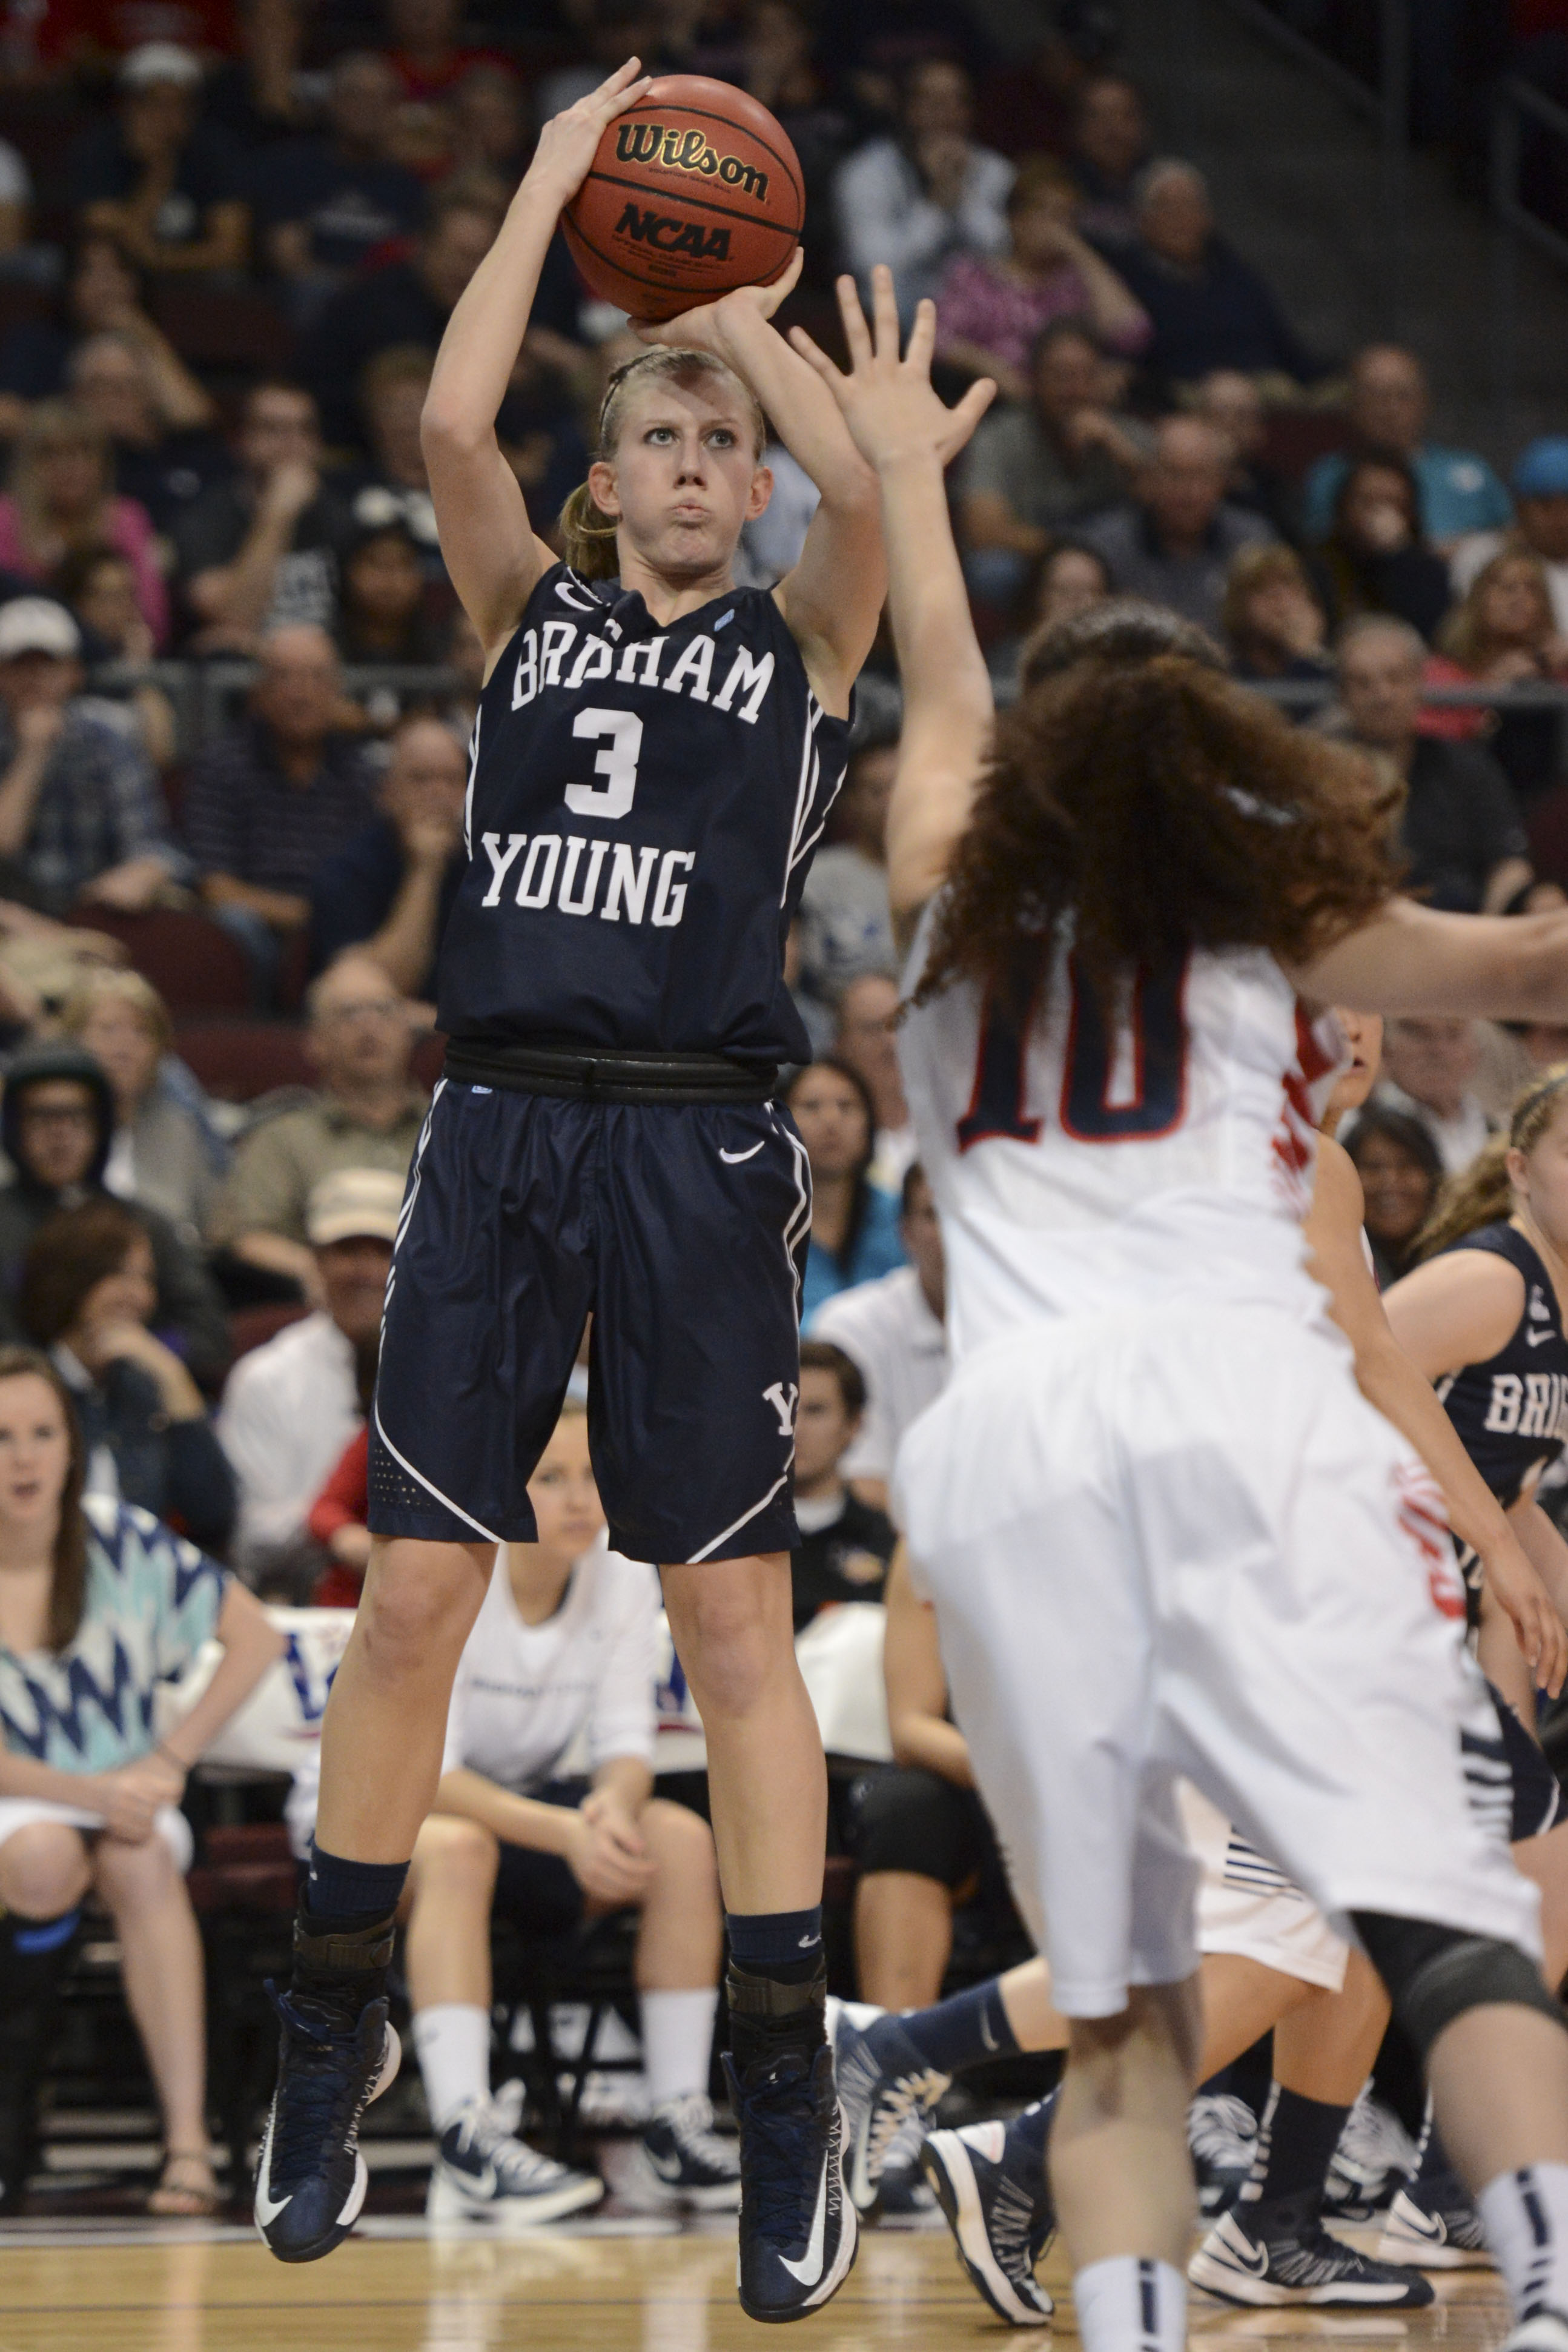 Ashley Garfield leaves a legacy of being a hard worker and a key part of the Cougars success.